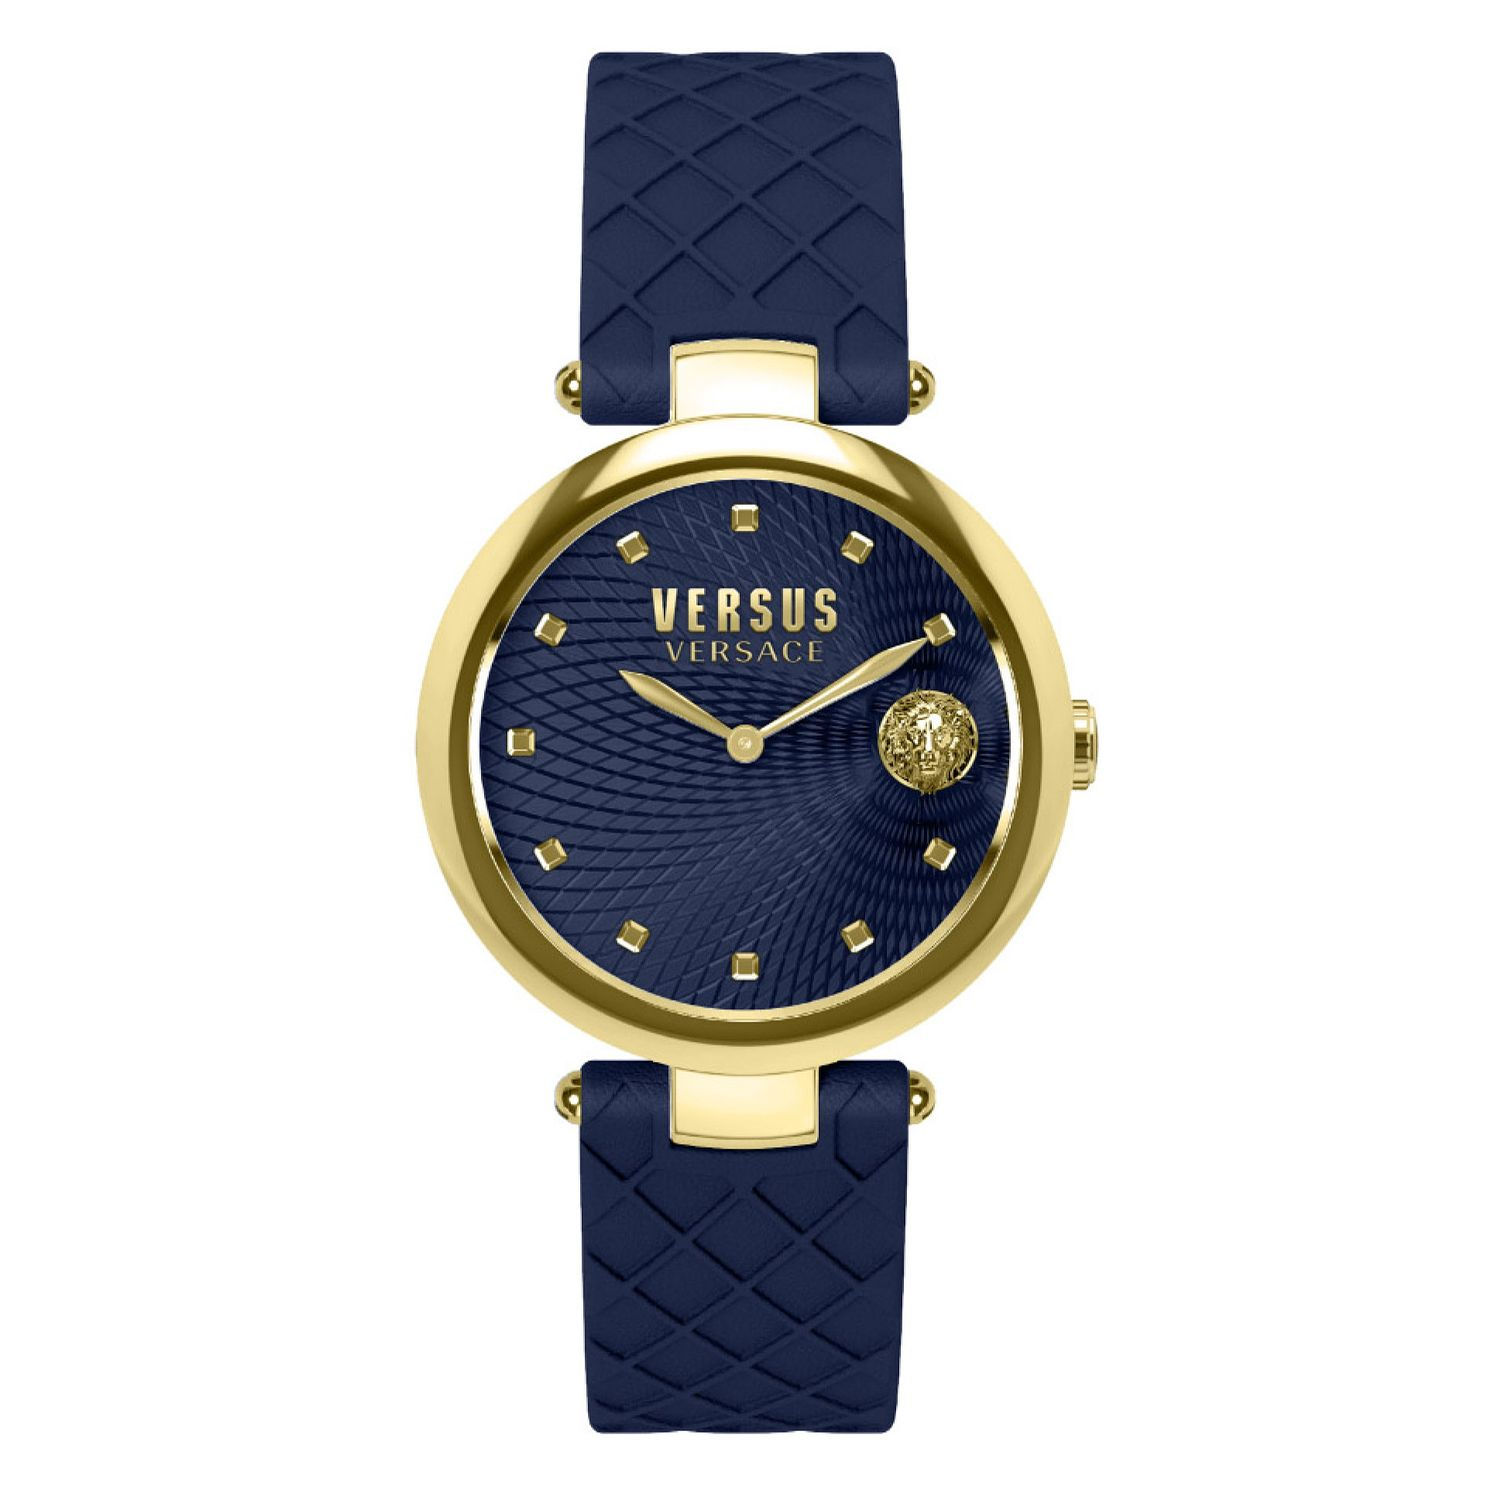 Versus Versace Buffle Bay Ladies' Blue Strap Watch - Product number 8050384